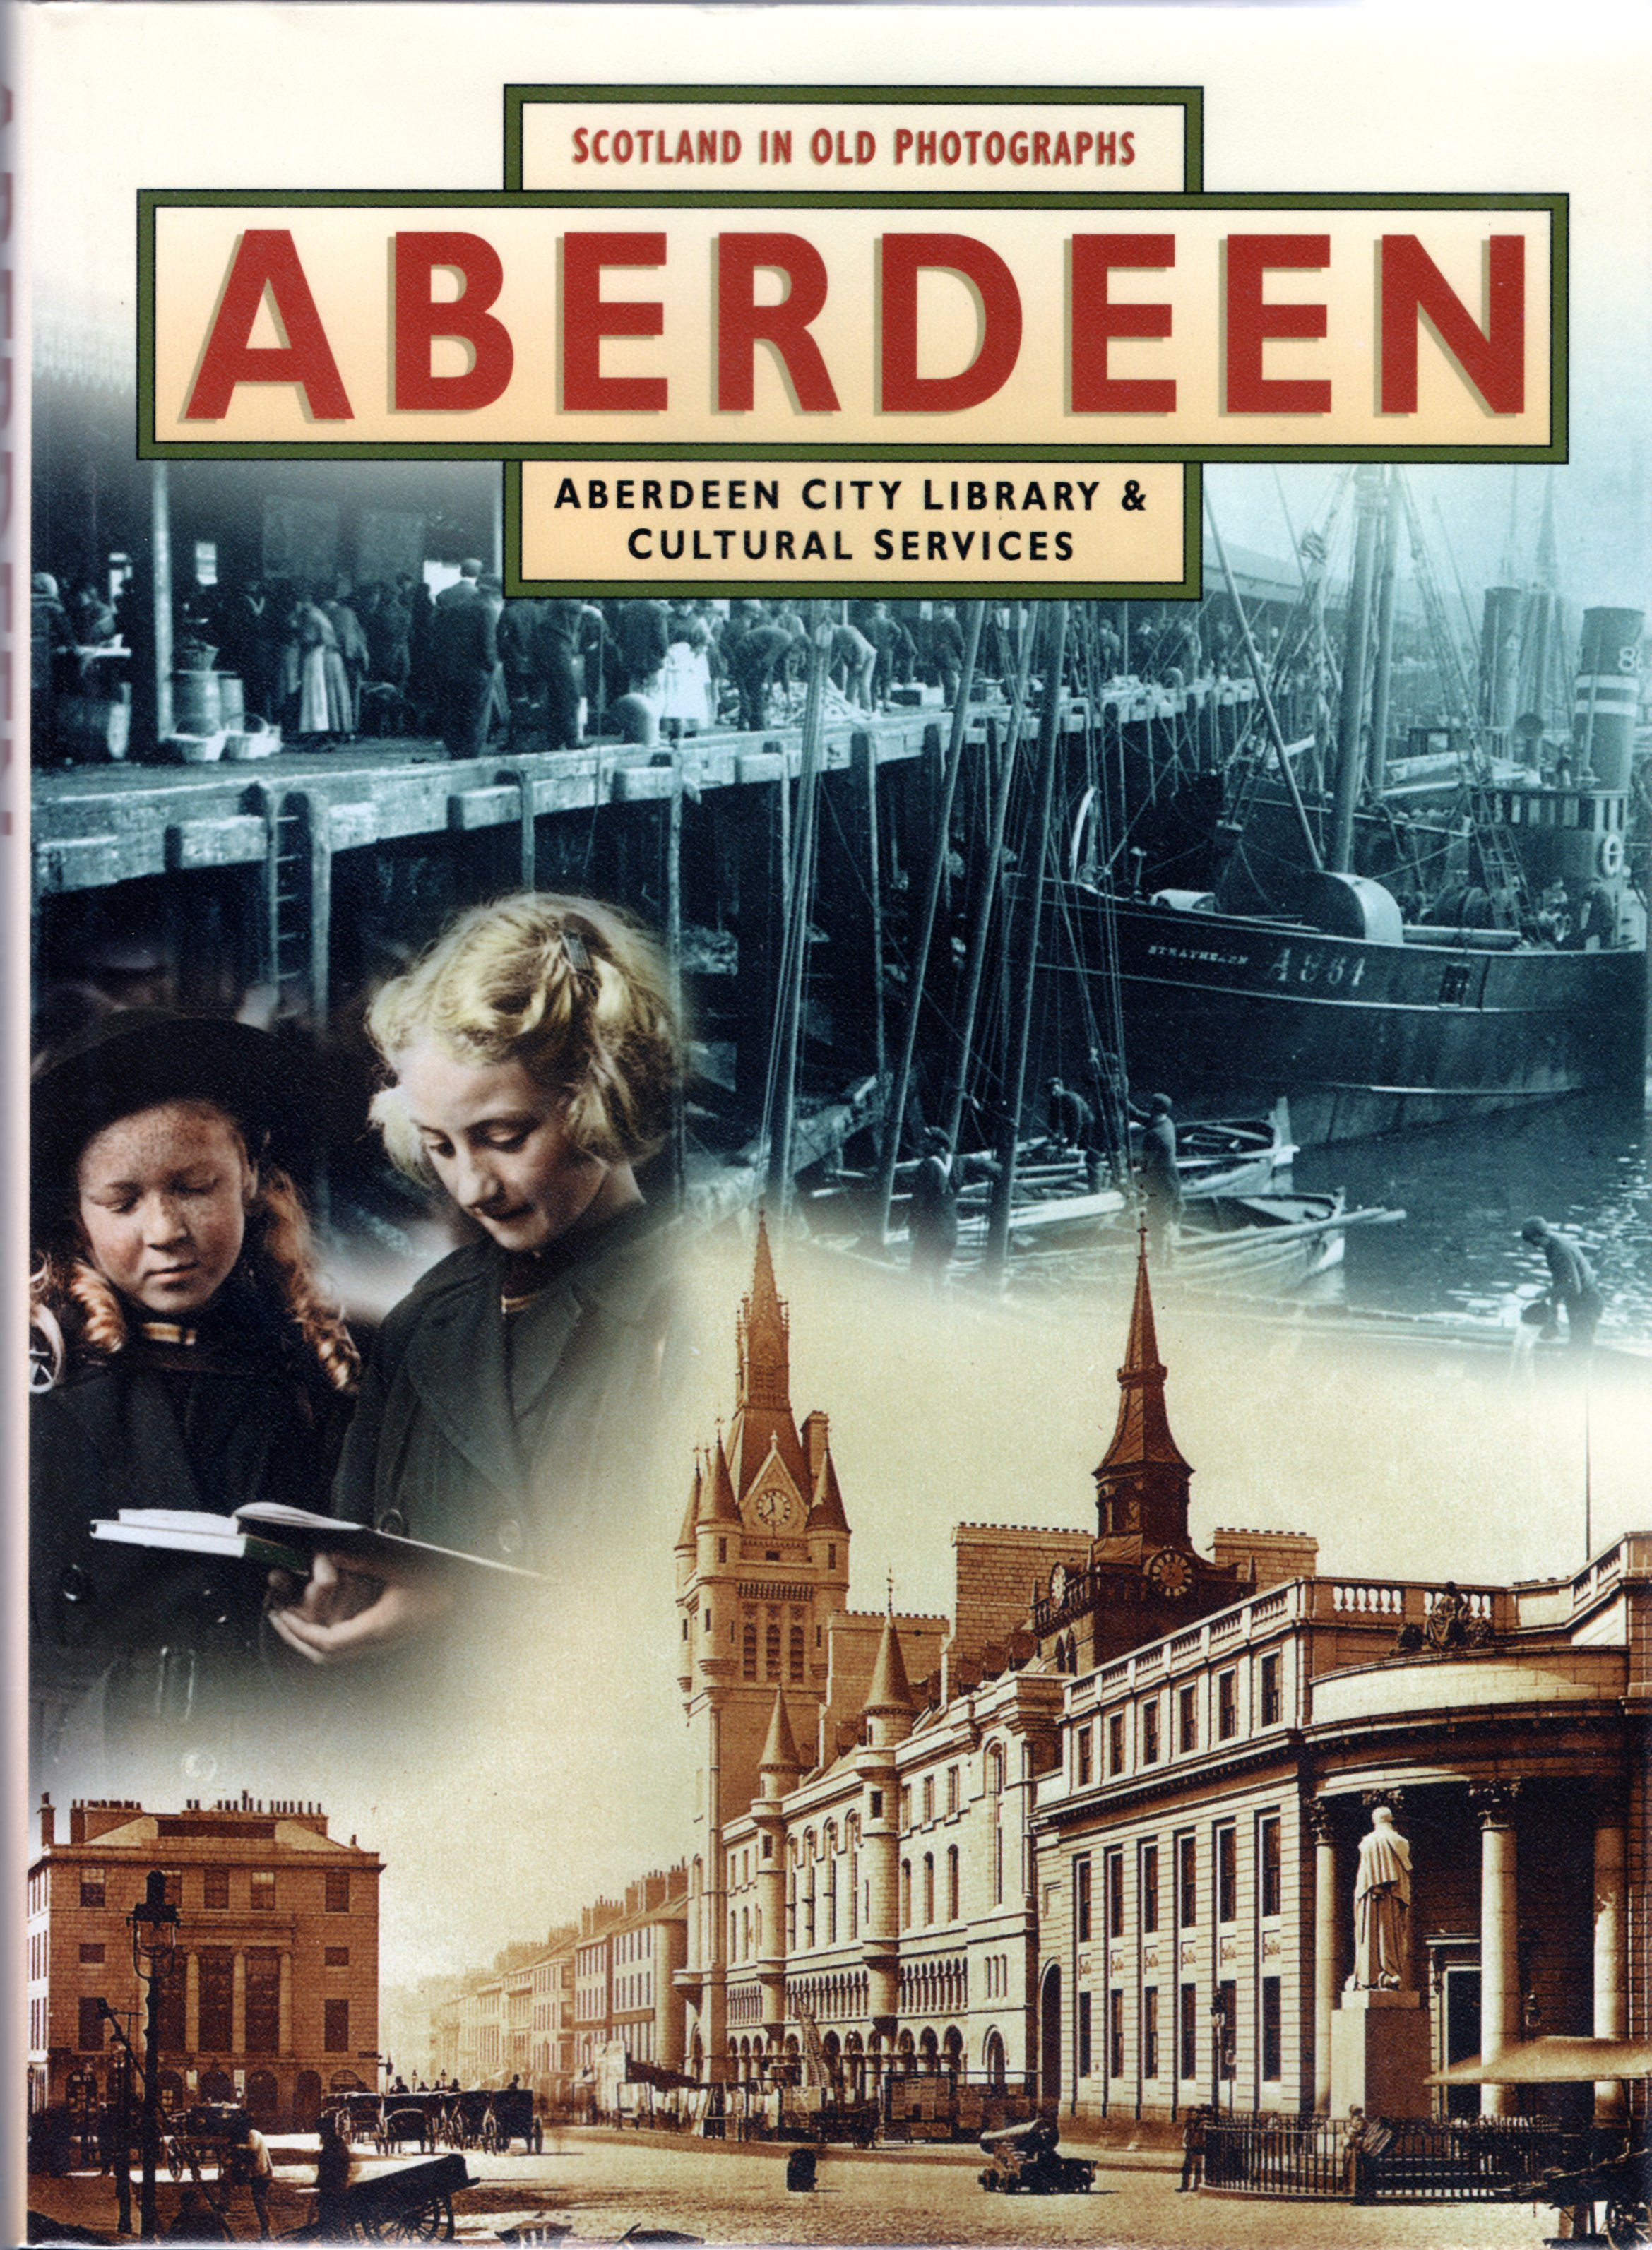 Image for Aberdeen: Aberdeen City Library & Cultural Services (Scotland in Old Photographs)